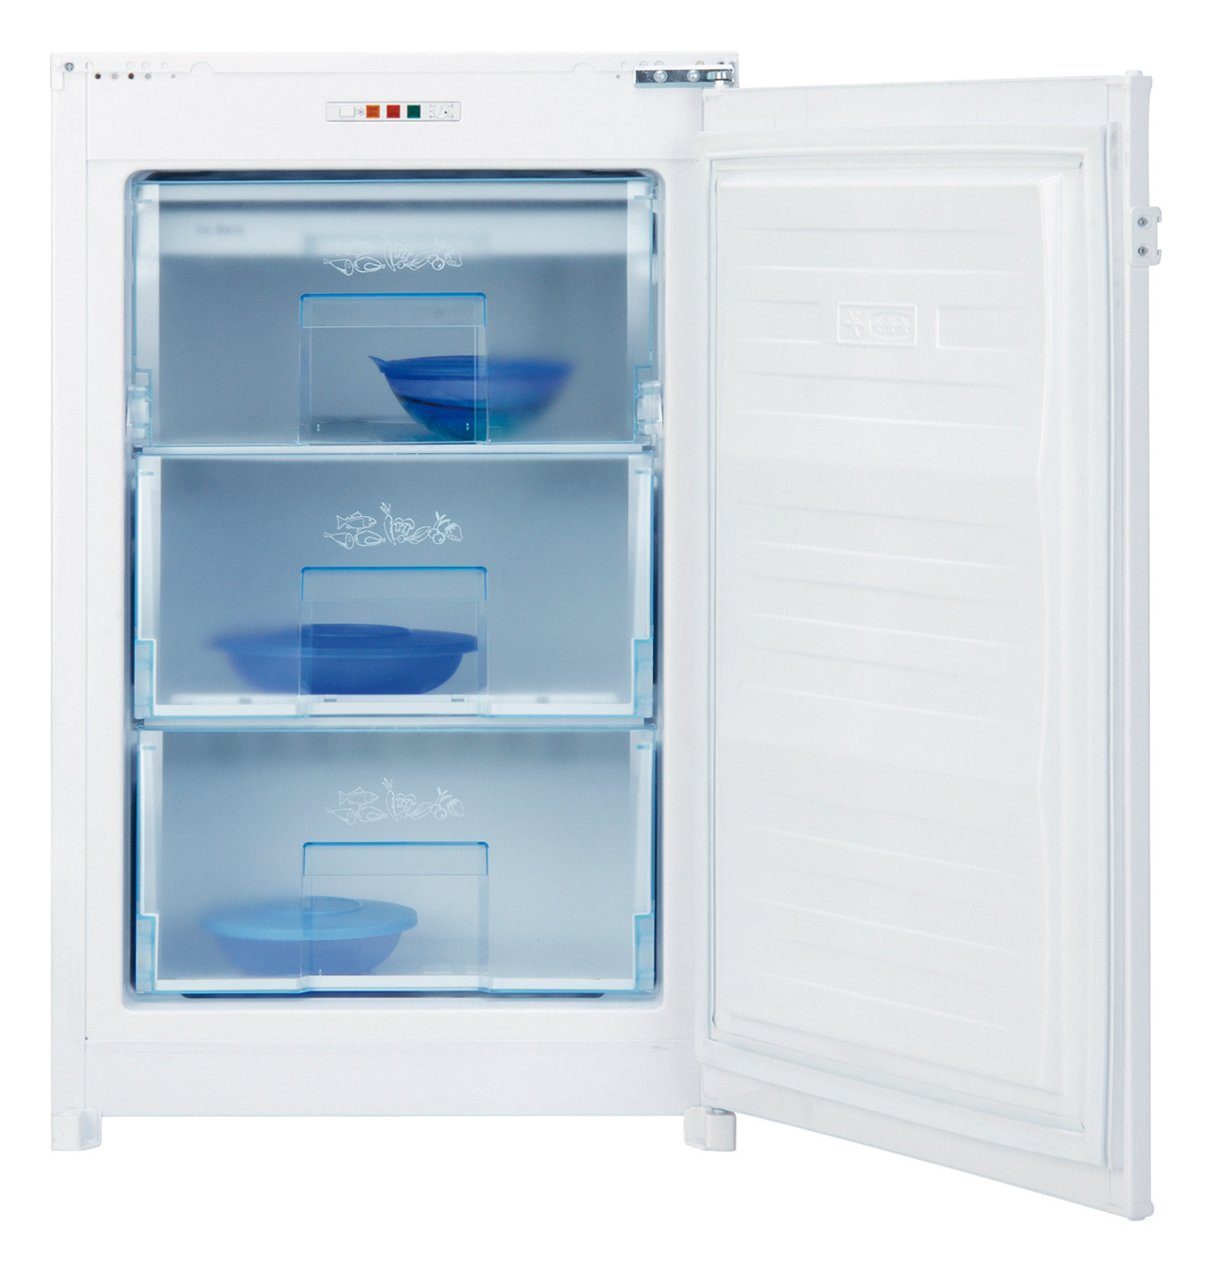 Beko B 1901 - Congelador (Vertical, Incorporado, Color blanco, 85L, 102L, 10 kg/24h): Amazon.es: Hogar